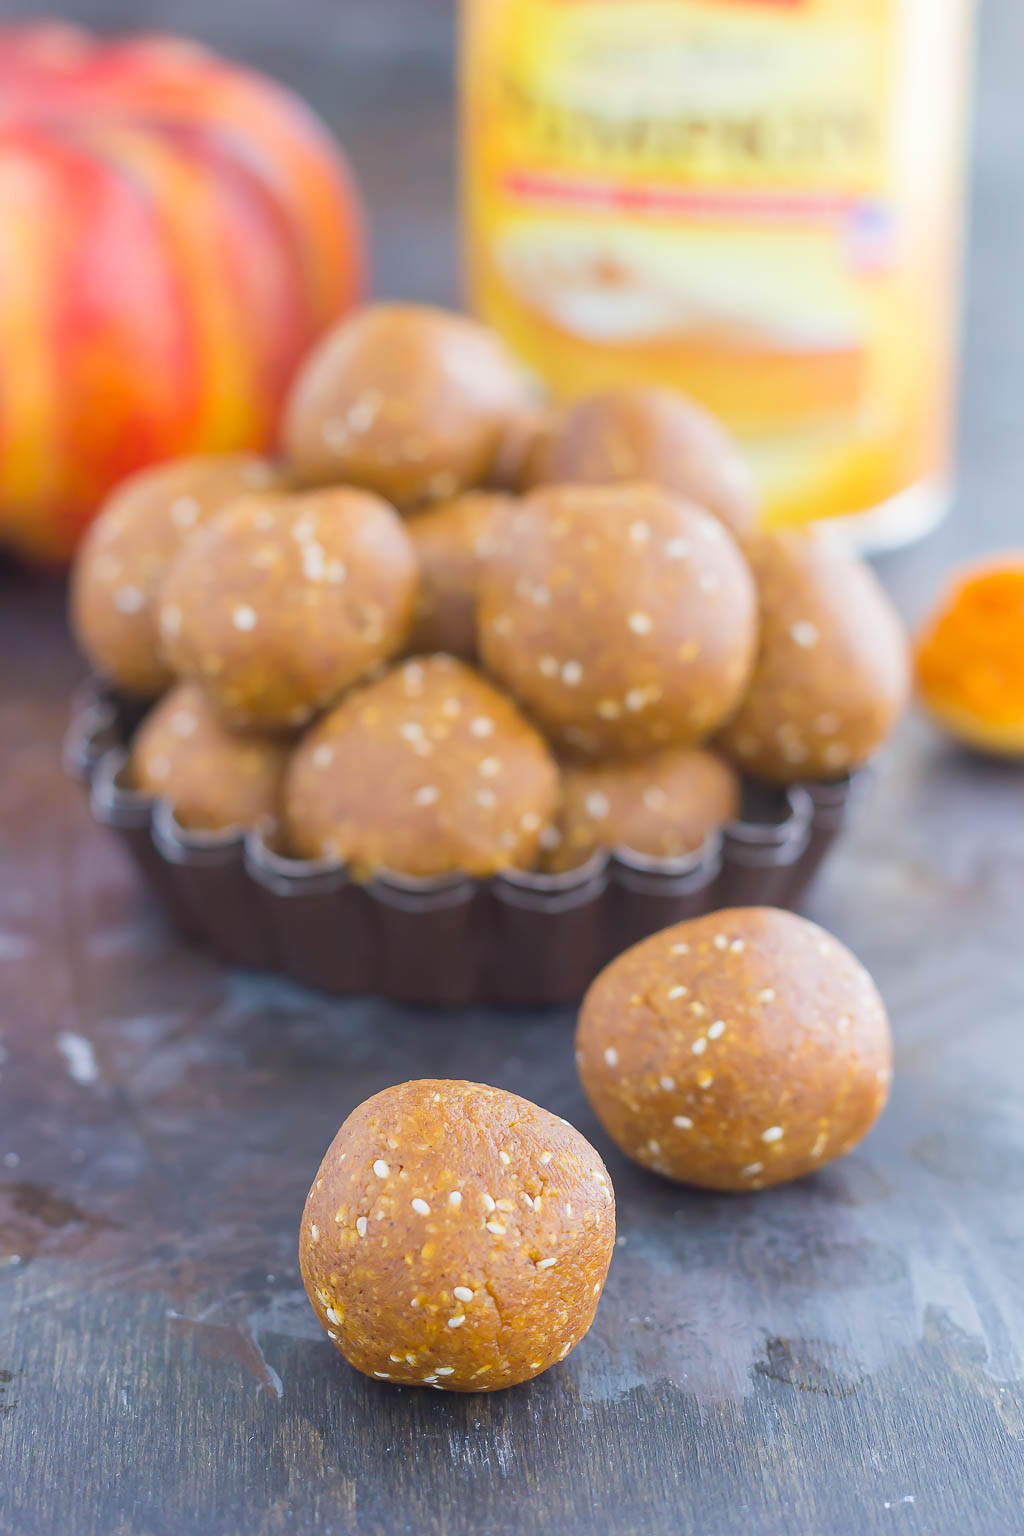 These Pumpkin Pie Bites taste just like the classic dessert, but in mini form, and without all of the prep work. Filled with ground oats, pumpkin puree, honey, and spices, these healthier bites are the perfect treat for fall!